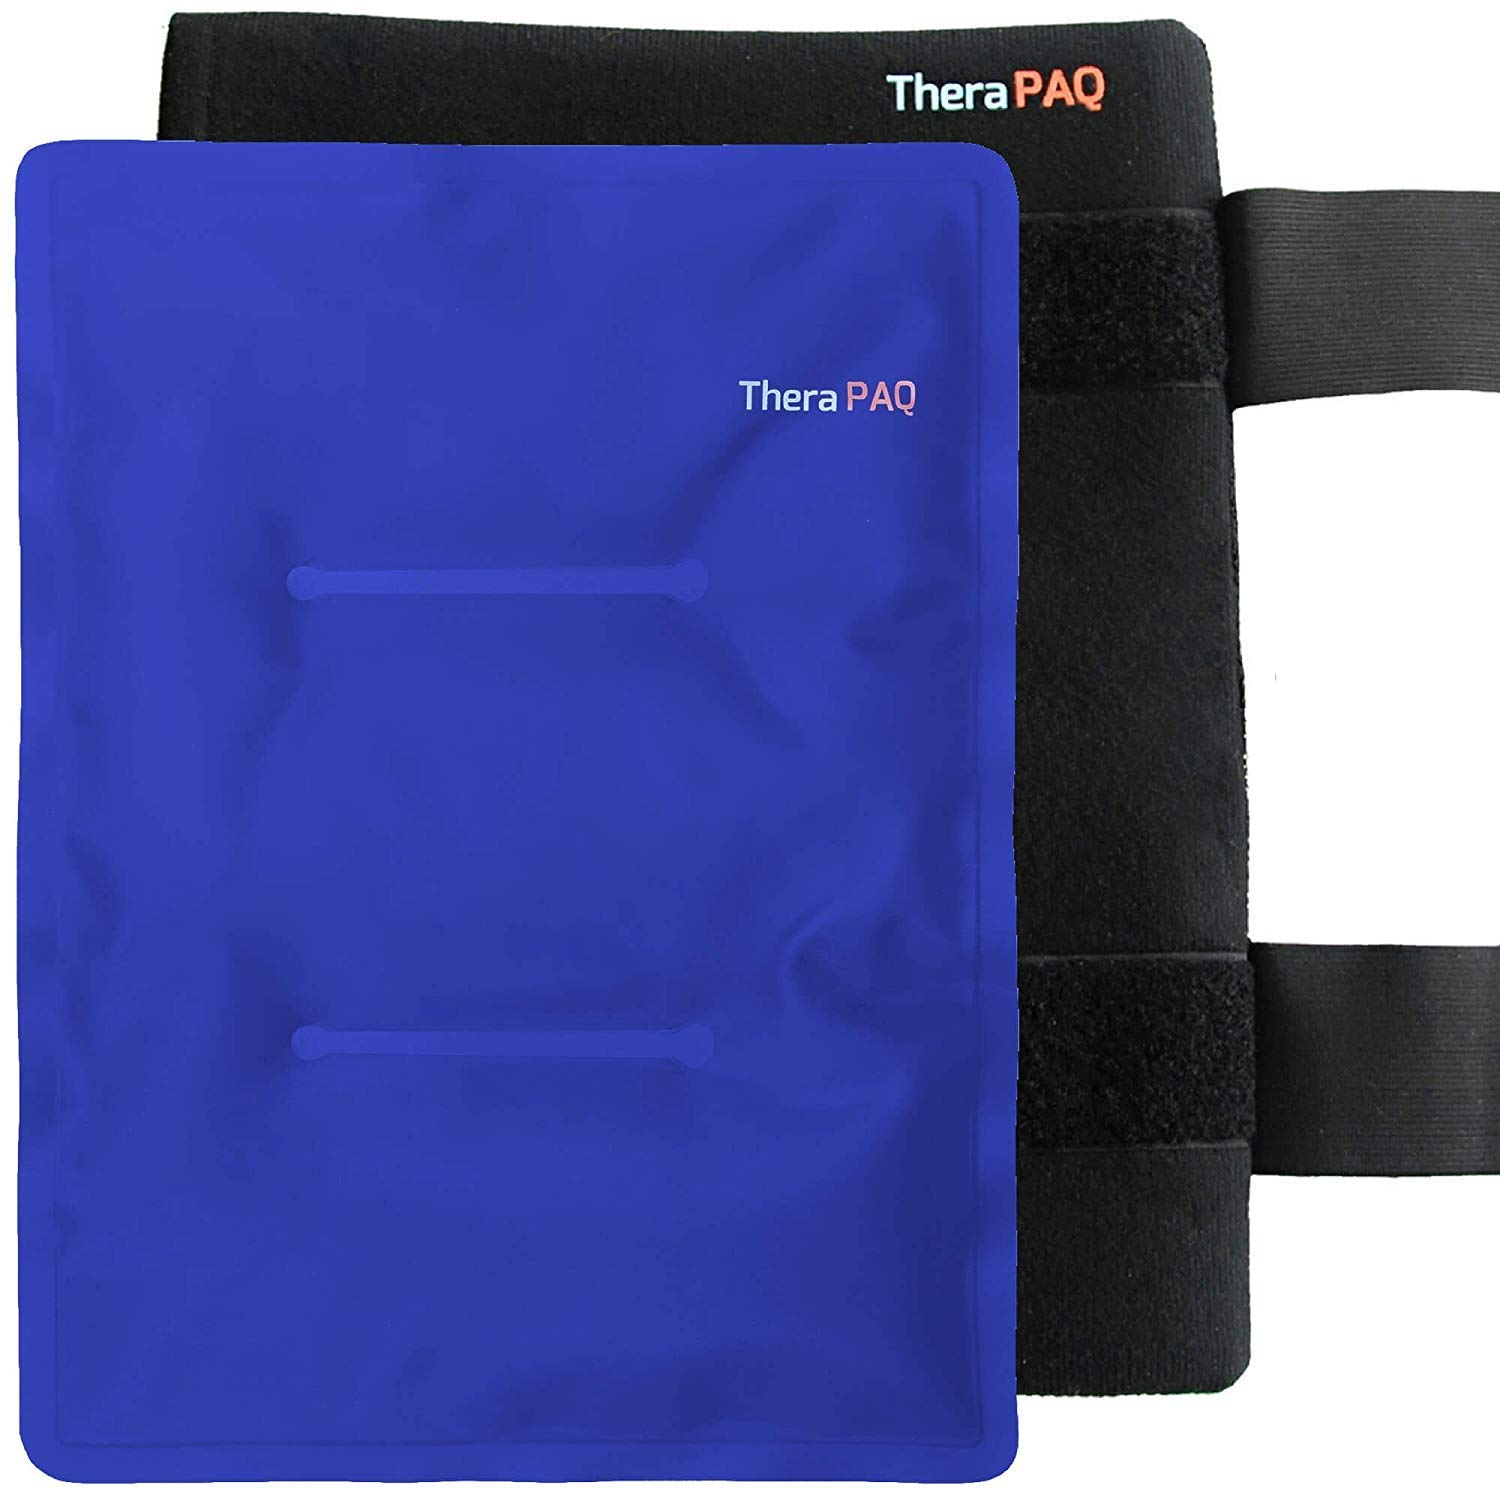 Large Reusable Gel Ice Pack with Wrap by TheraPAQ - Hot & Cold Therapy for Hip, Shoulder, Back, Knee - Pain Relief for Injuries, Recovery, Swelling, Aches, Bruises & Sprains (XL Blue Pack: 14'' X 11'') by TheraPAQ